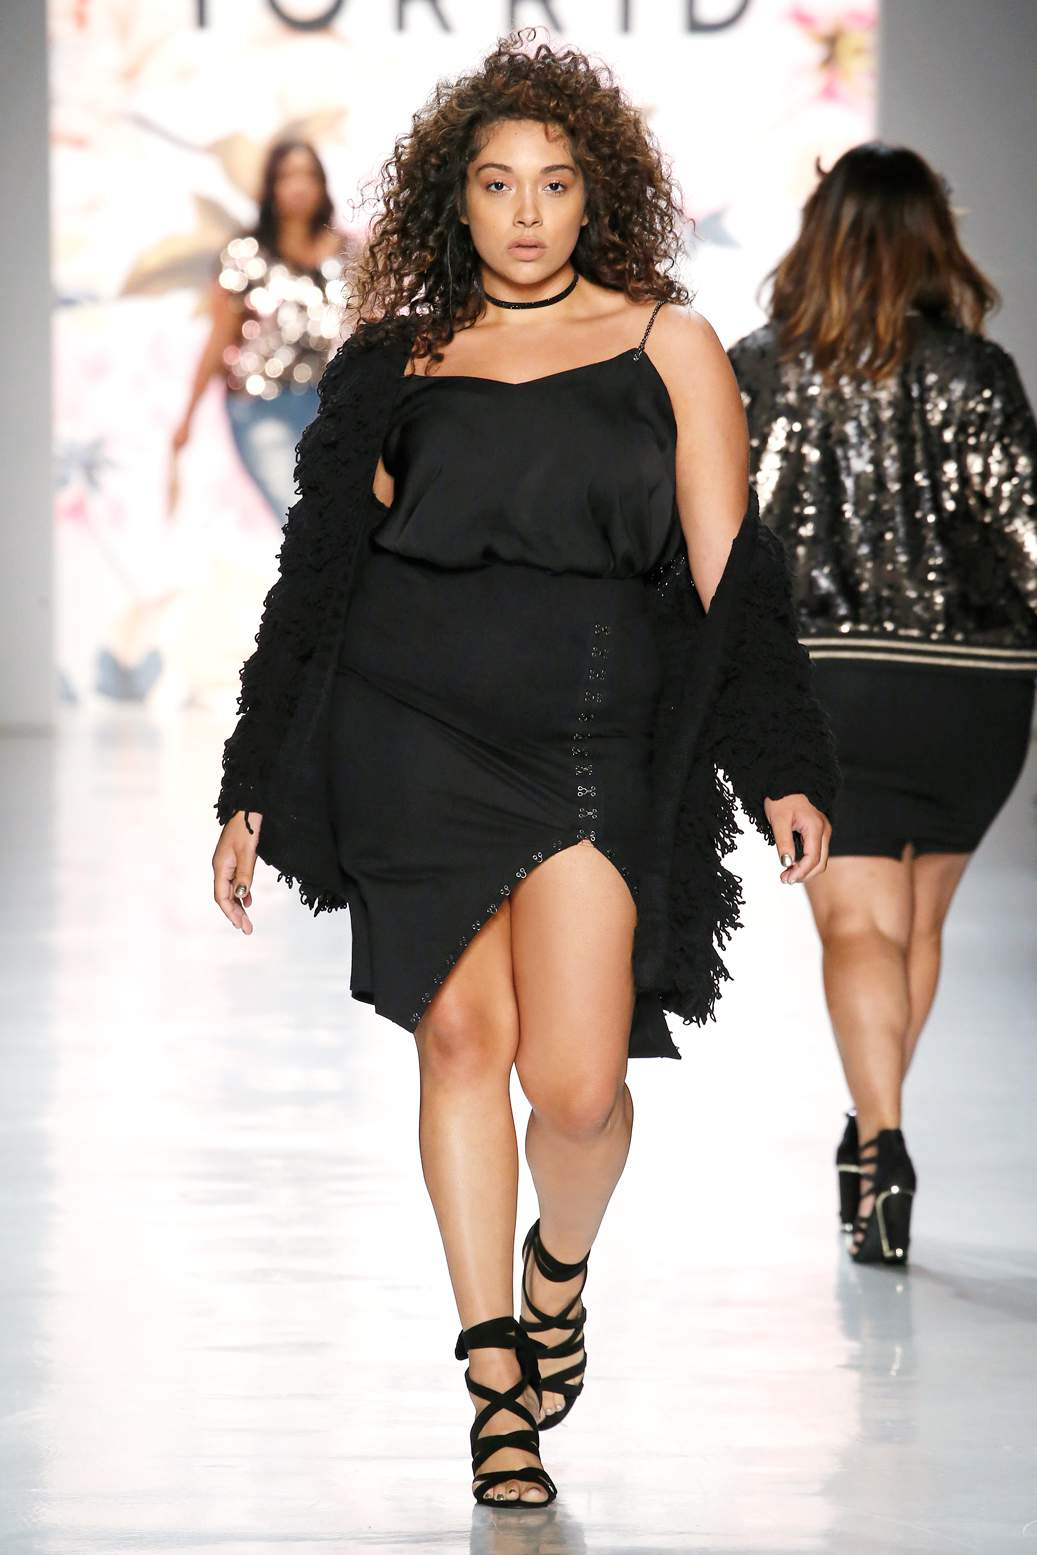 Torrid's Spring 2018 Collection